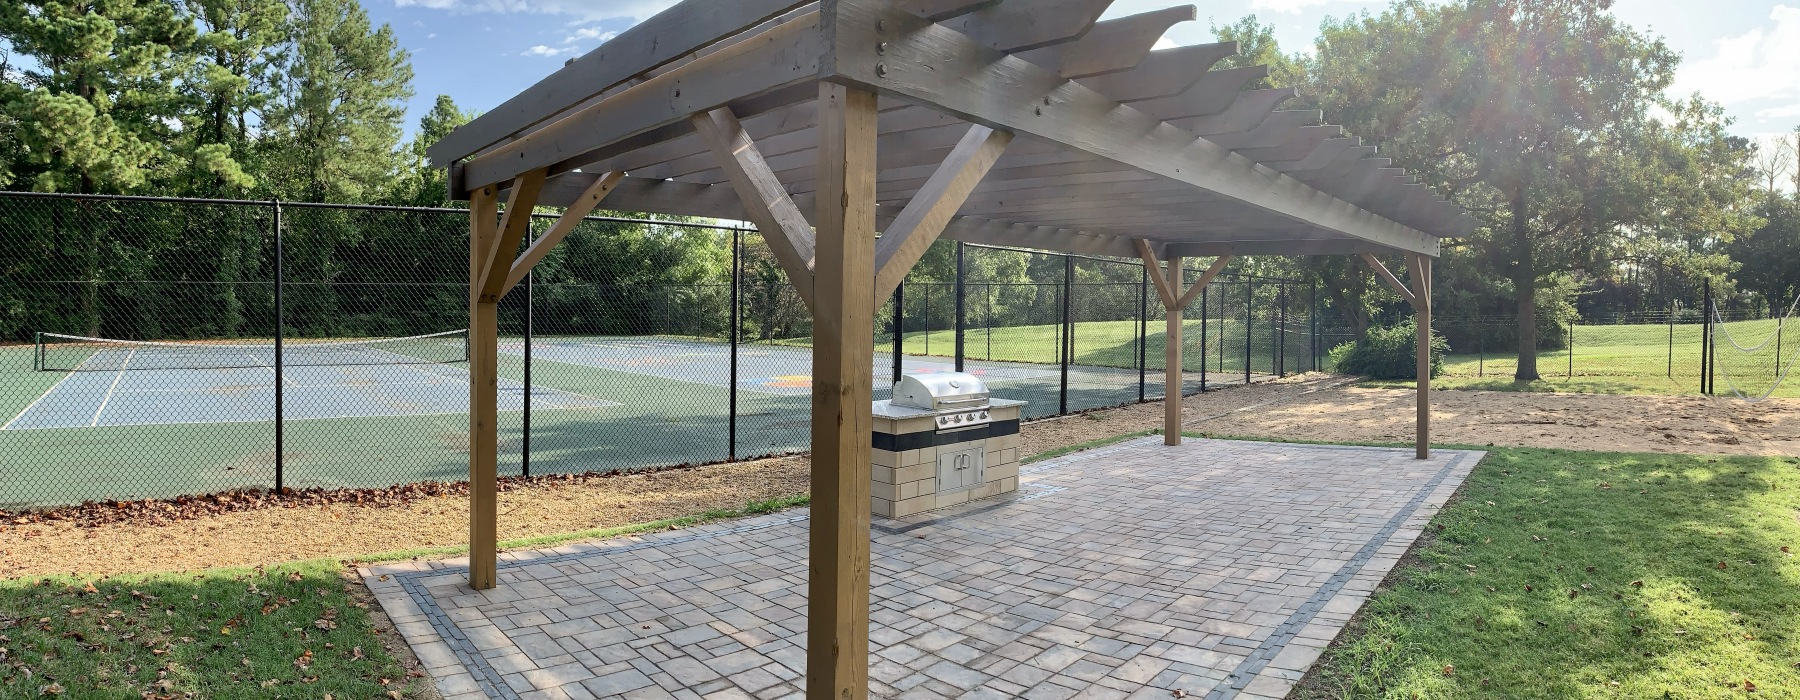 Social grilling terrace with pergola, tennis courts, and vollyeball court